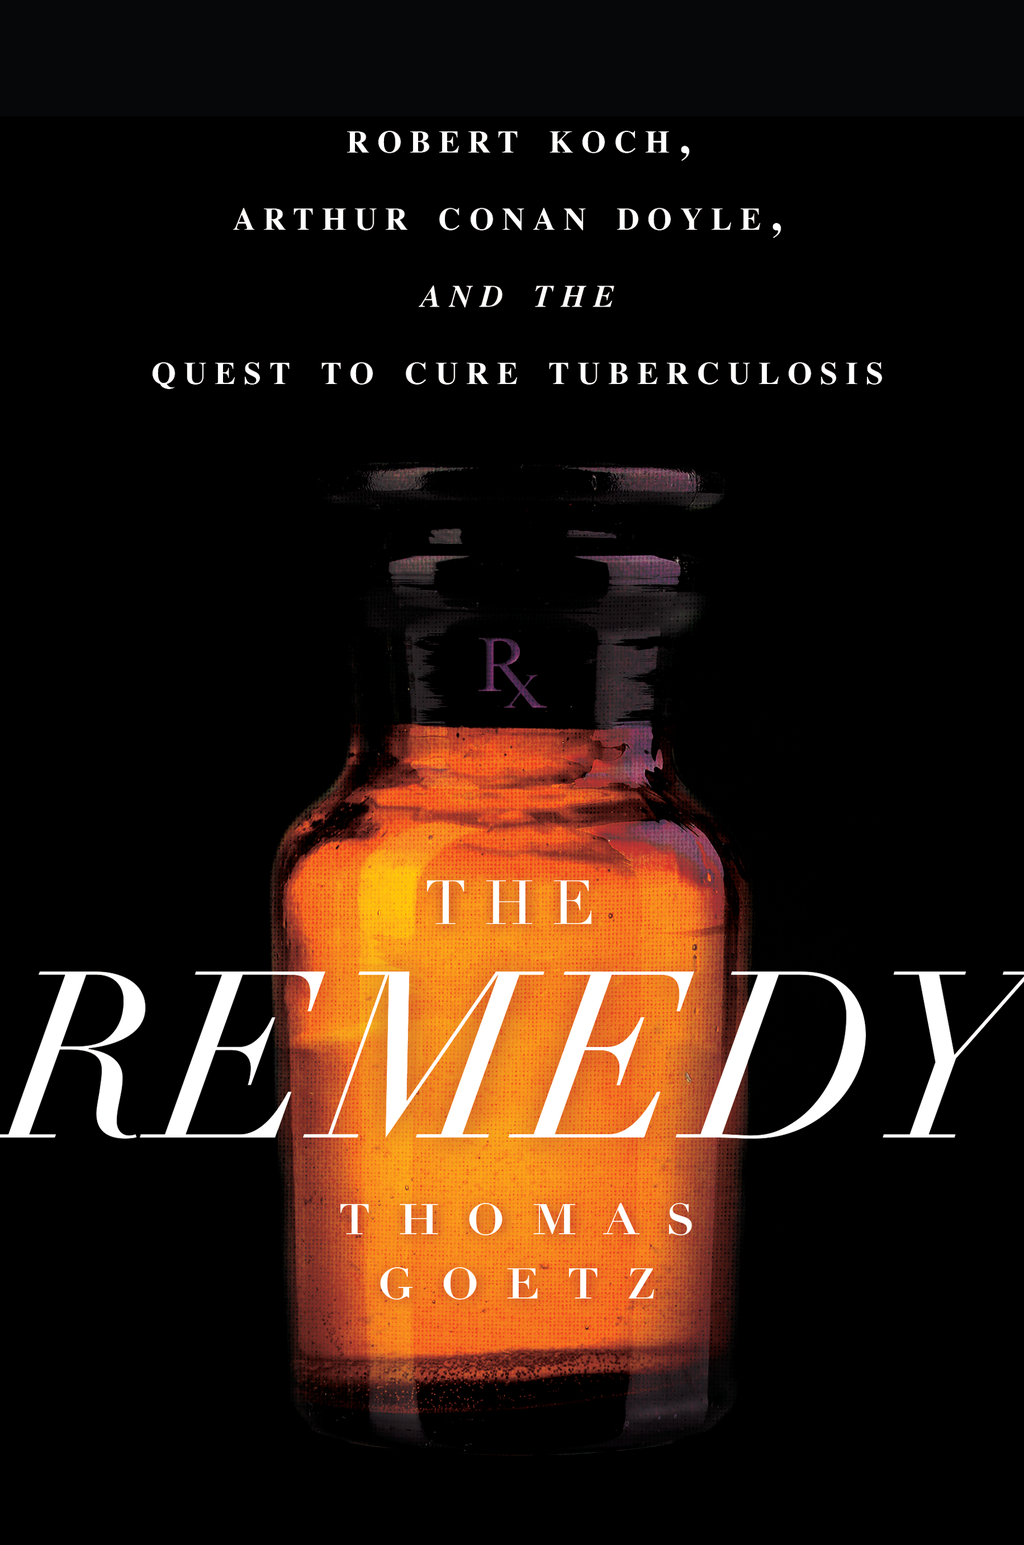 The Remedy Robert Koch,  Arthur Conan Doyle,  and the Quest to Cure Tuberculosis